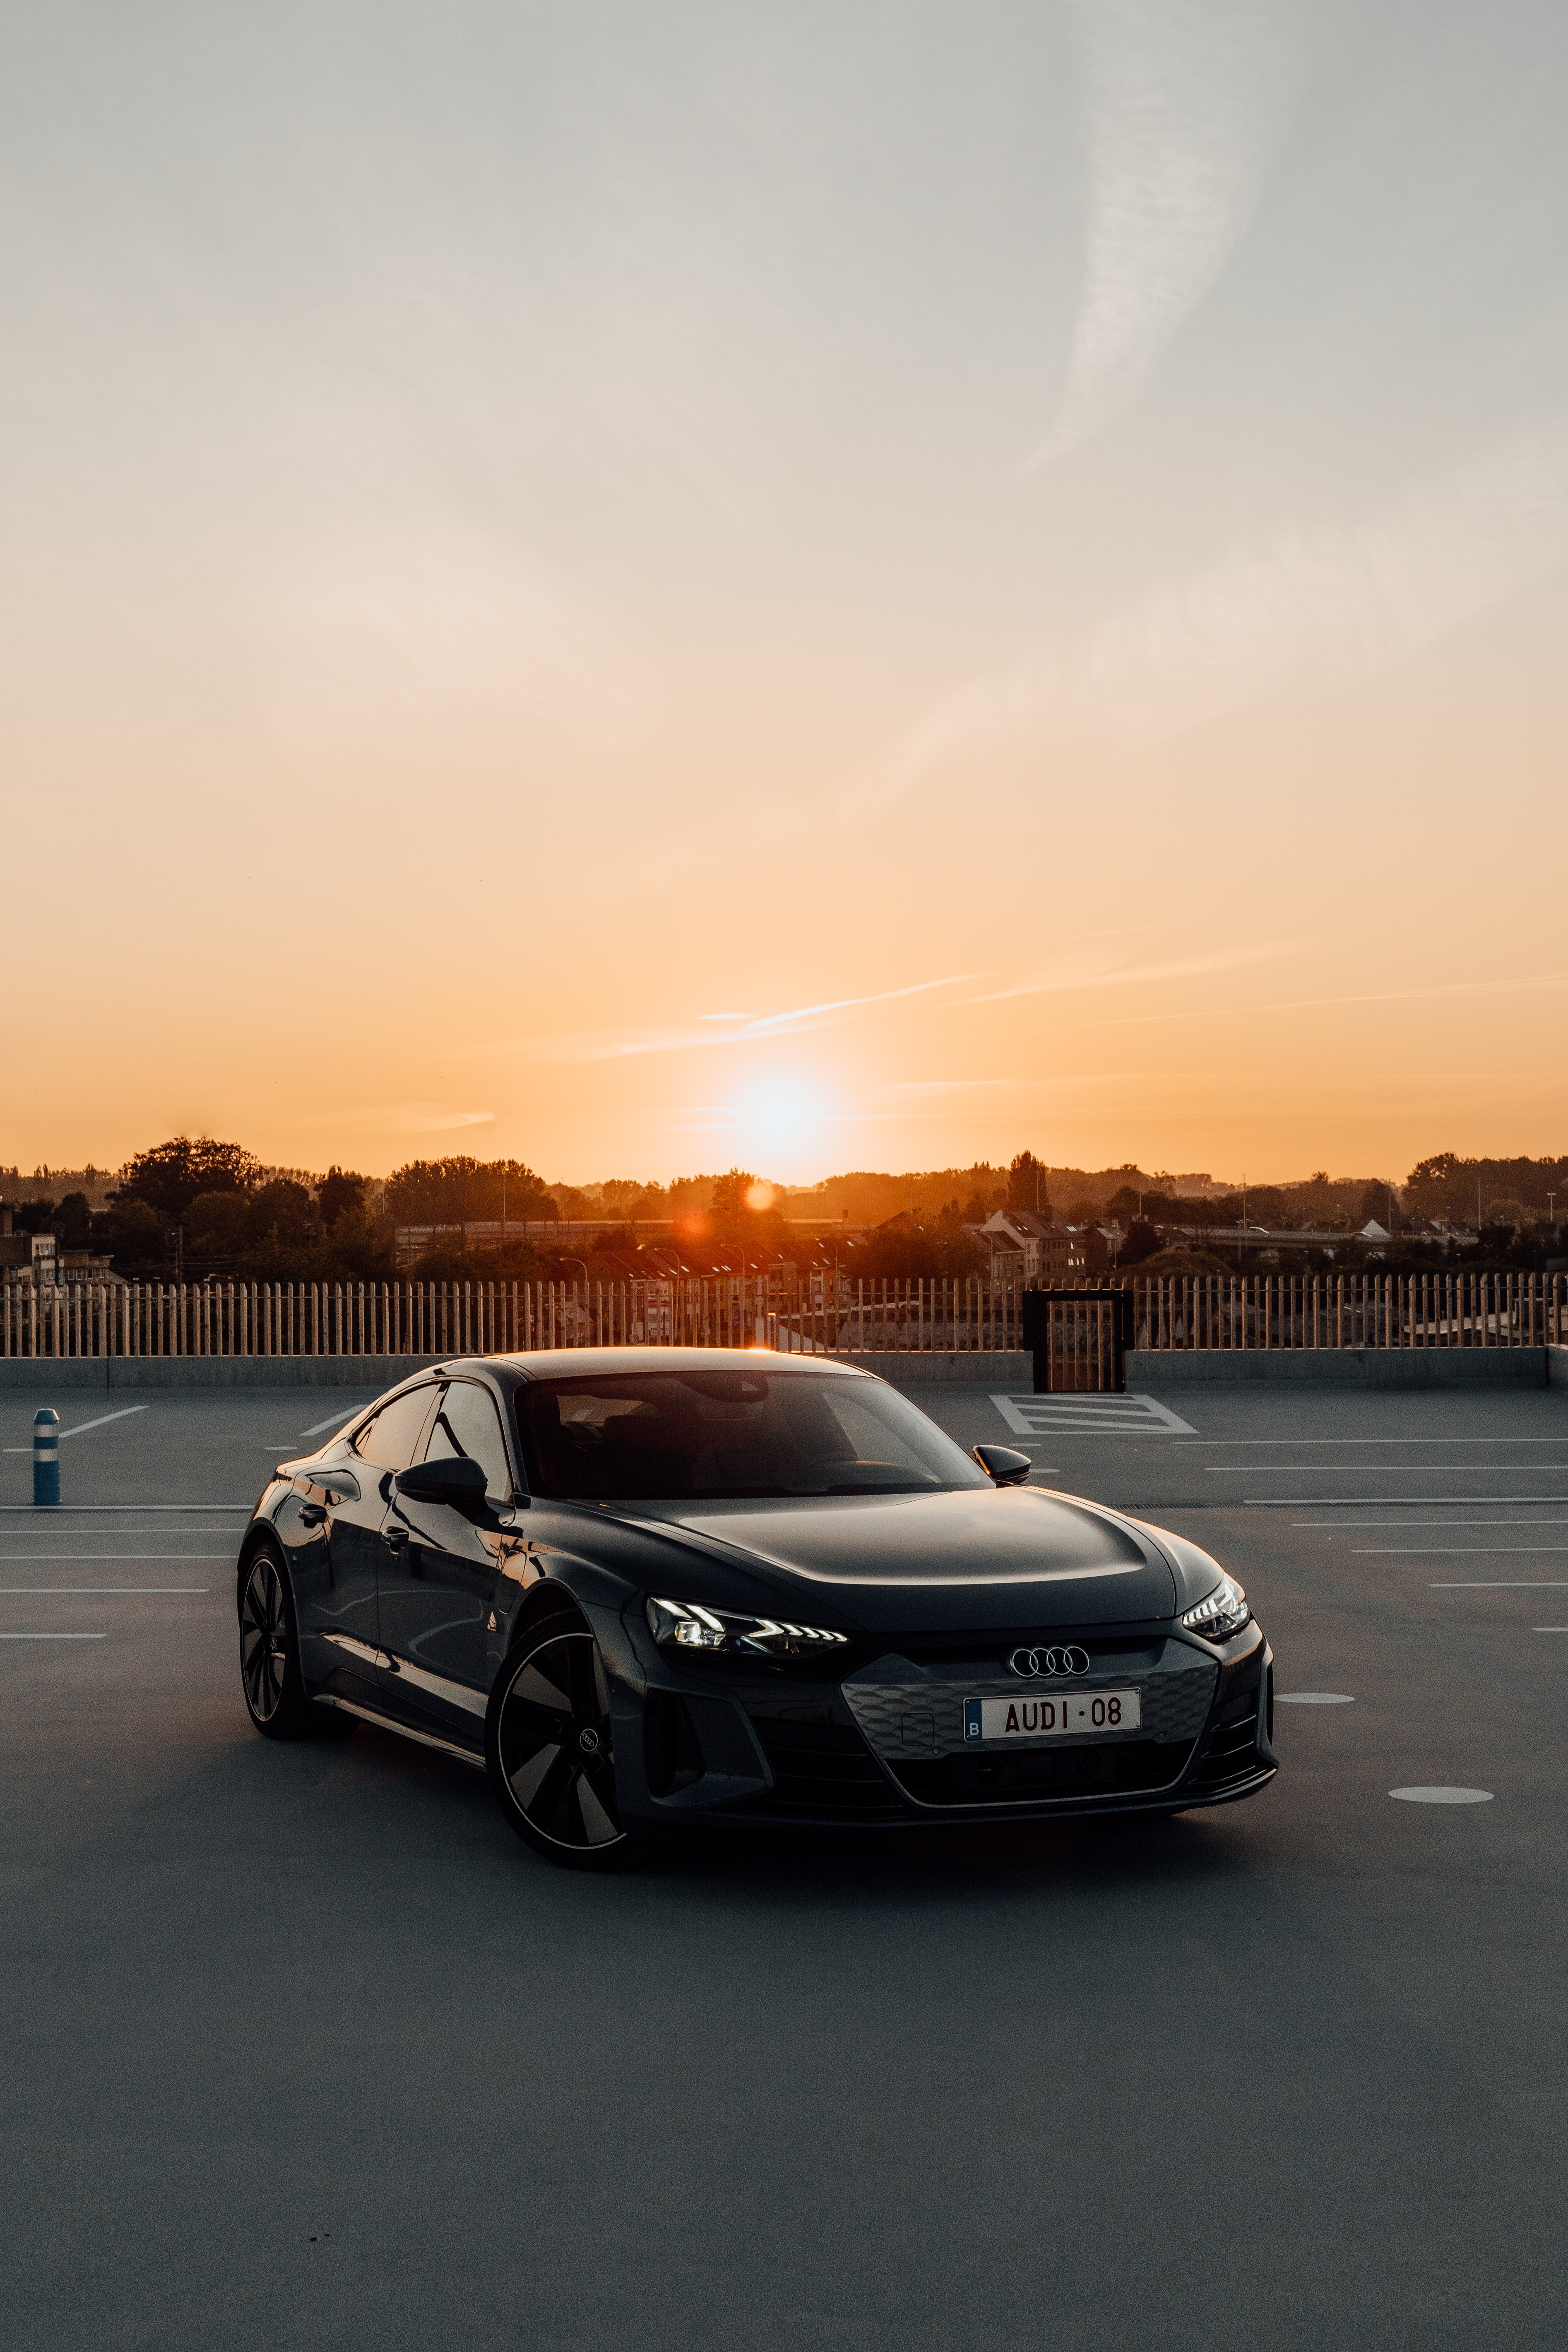 Testdriving the new electric sportscar (Audi Etron GT) through Aalst during sunset. Instagram: @Kenny.leys